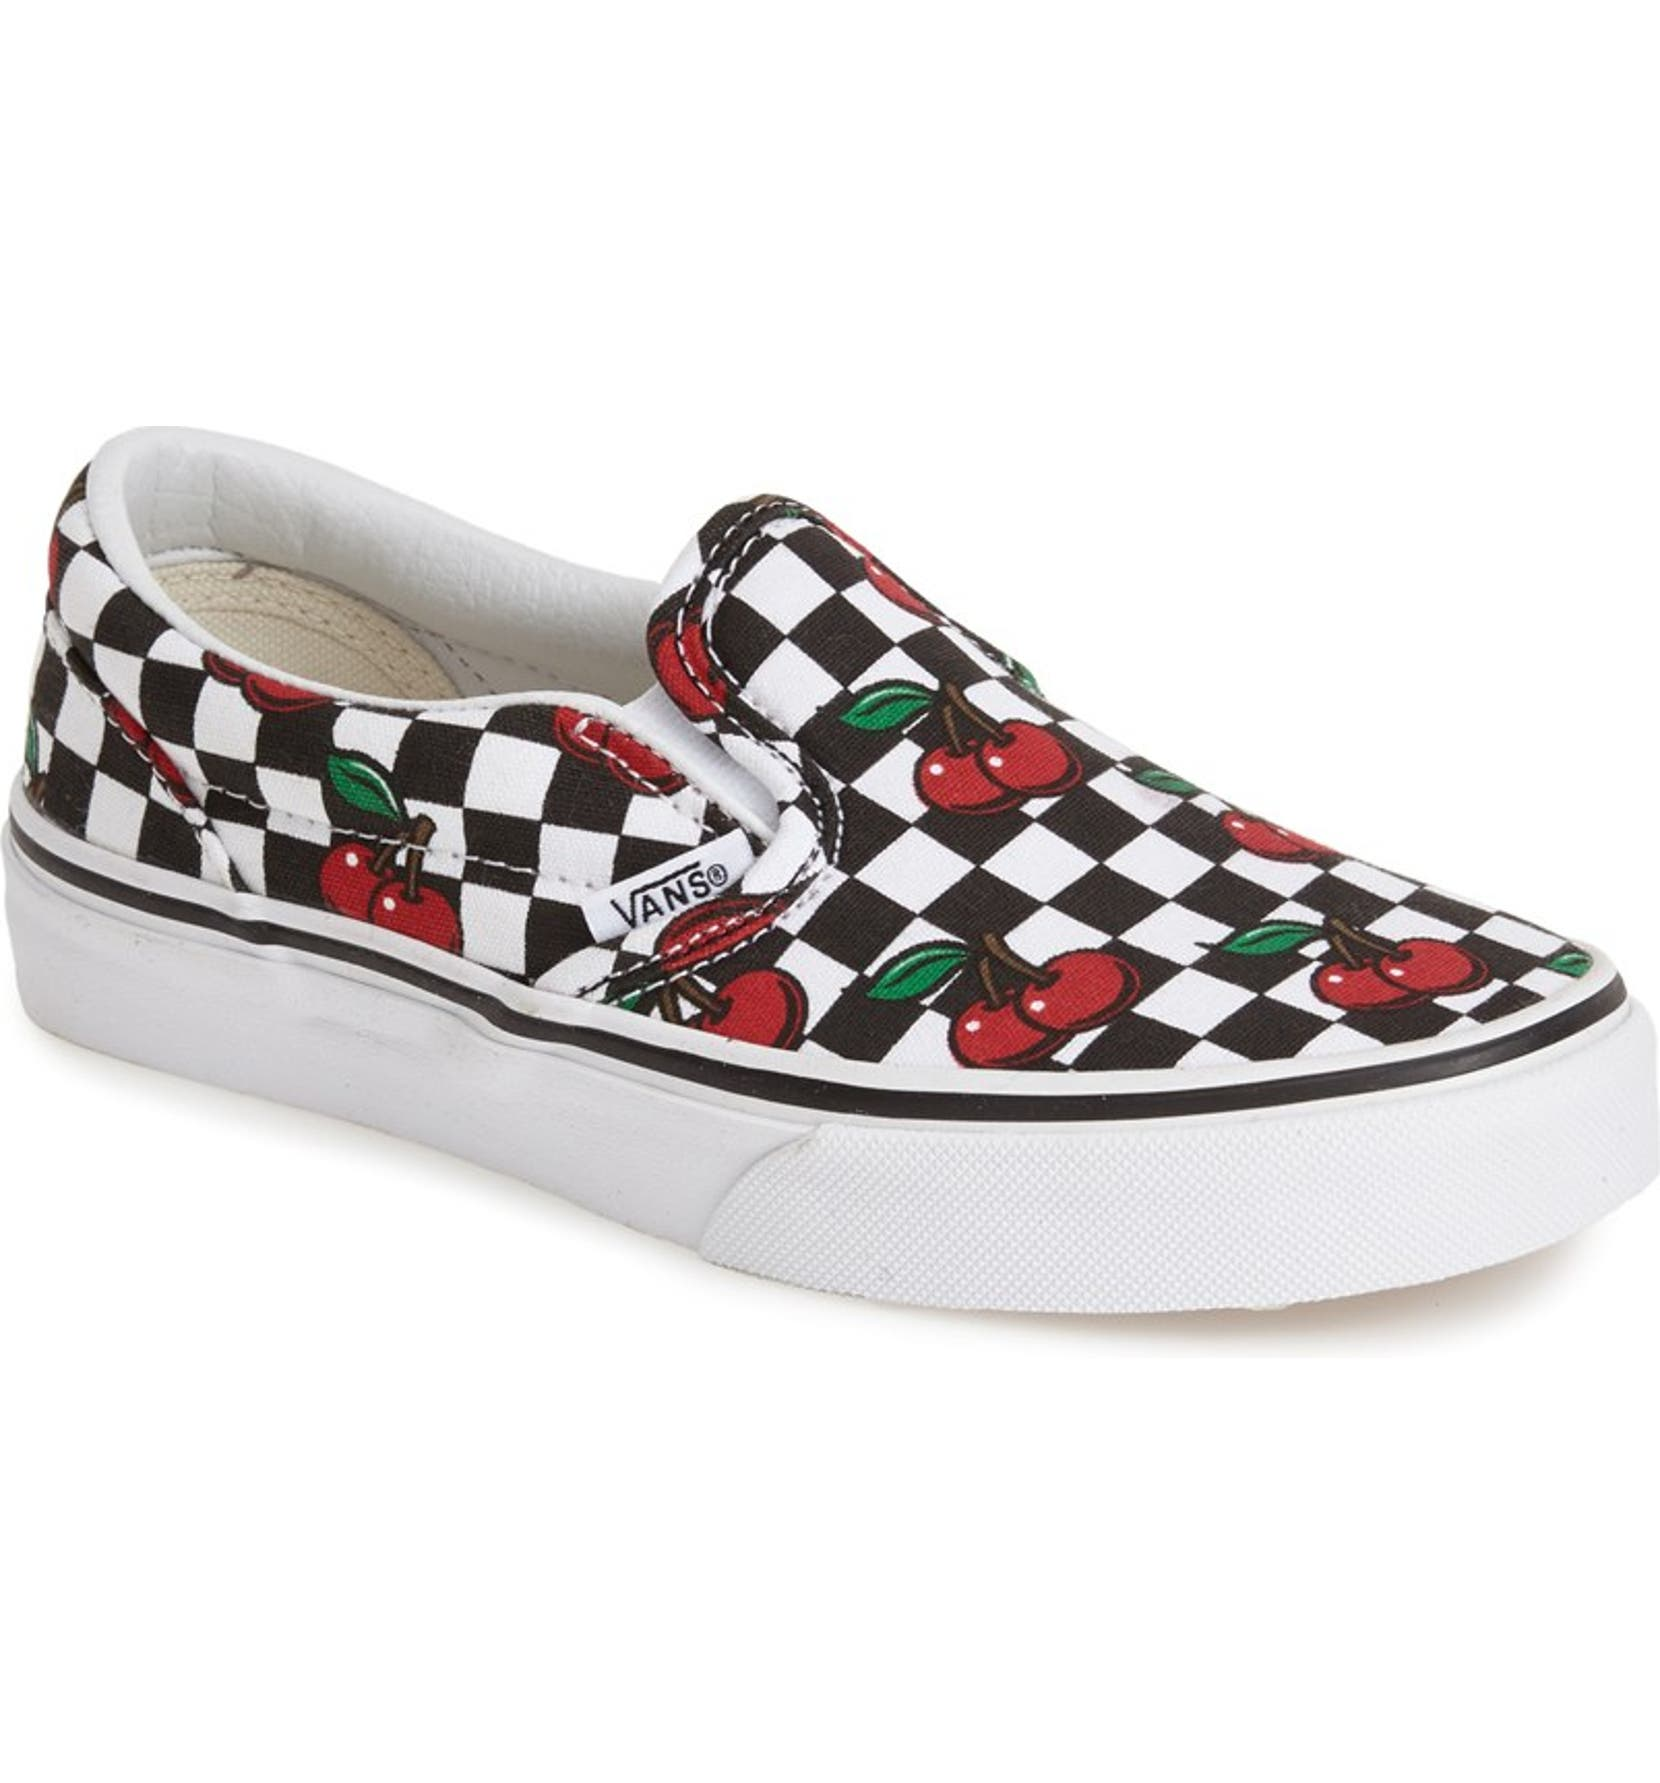 a1f5aba8f08 Vans  Classic - Cherry Checkerboard  Slip-On (Toddler